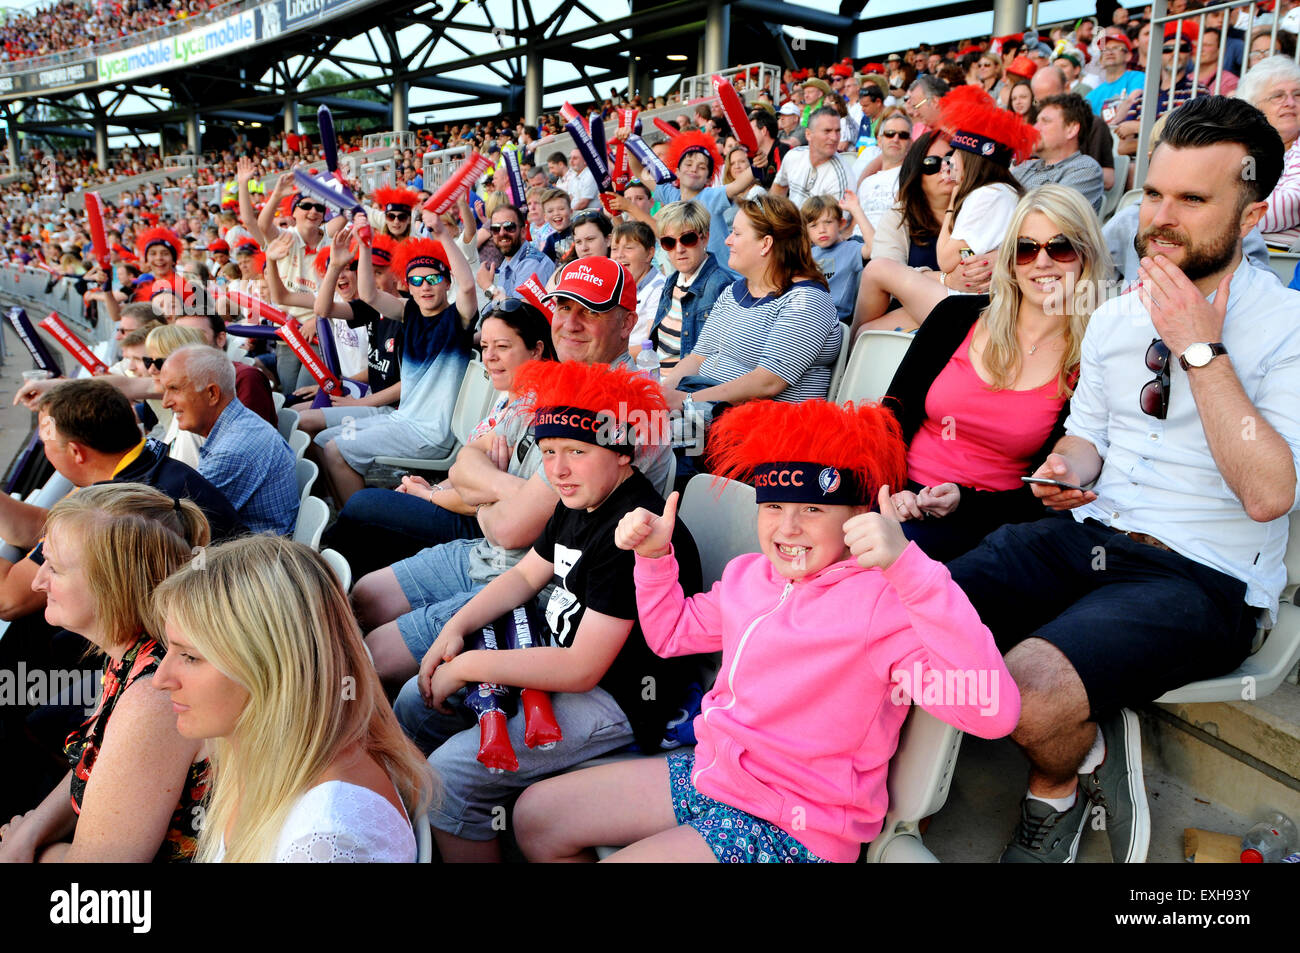 Fans celebrating in the crowd at Emirates Old Trafford, Manchester, England. T20 Blast cricket match Lancashire Stock Photo